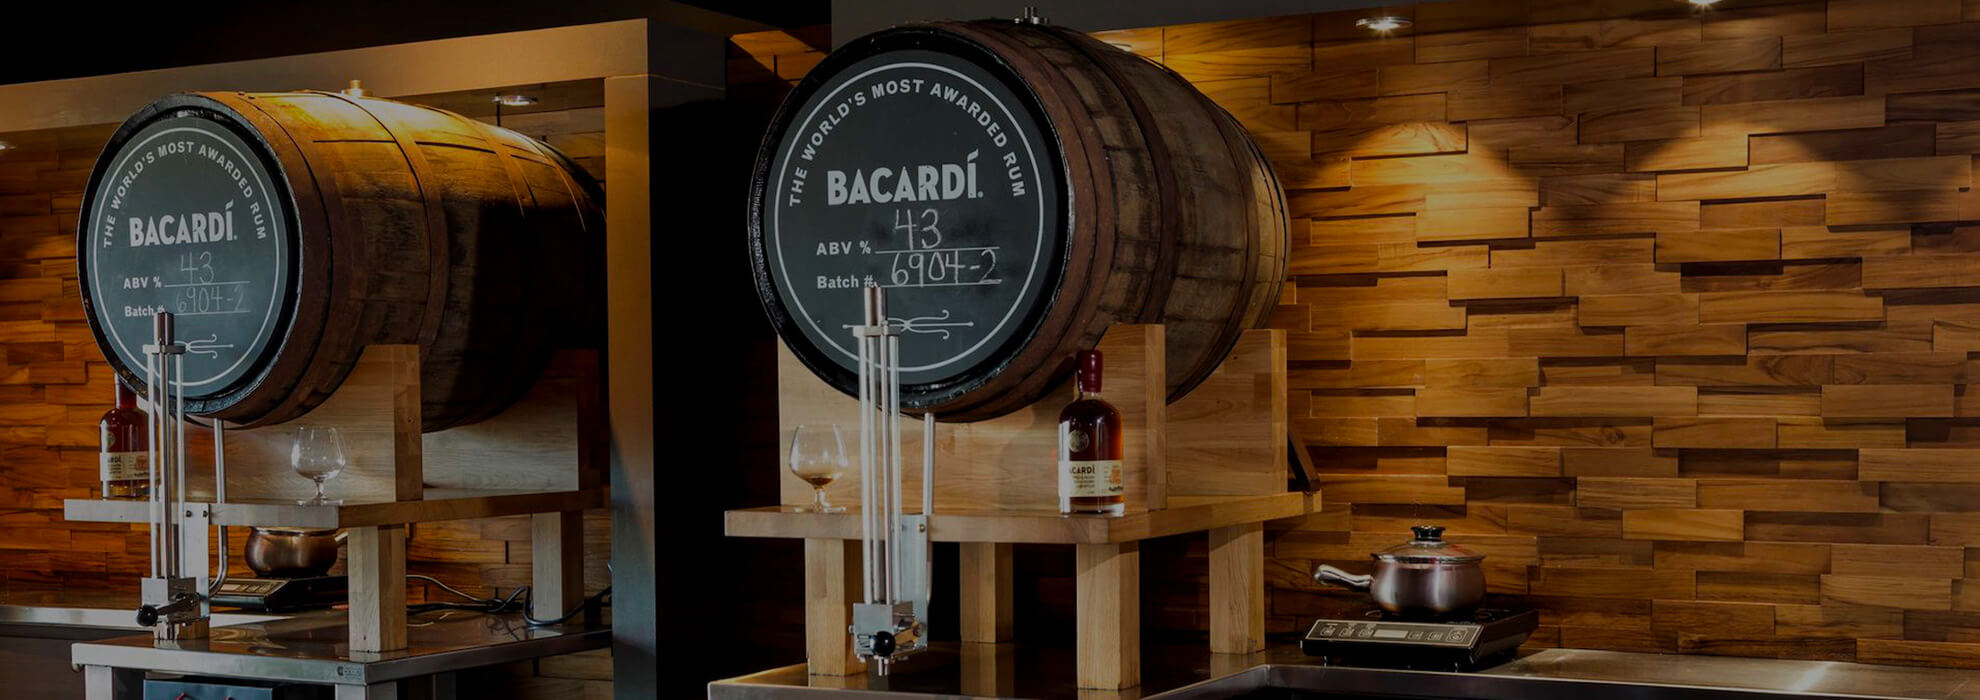 casa bacardi fill your own spirit casks